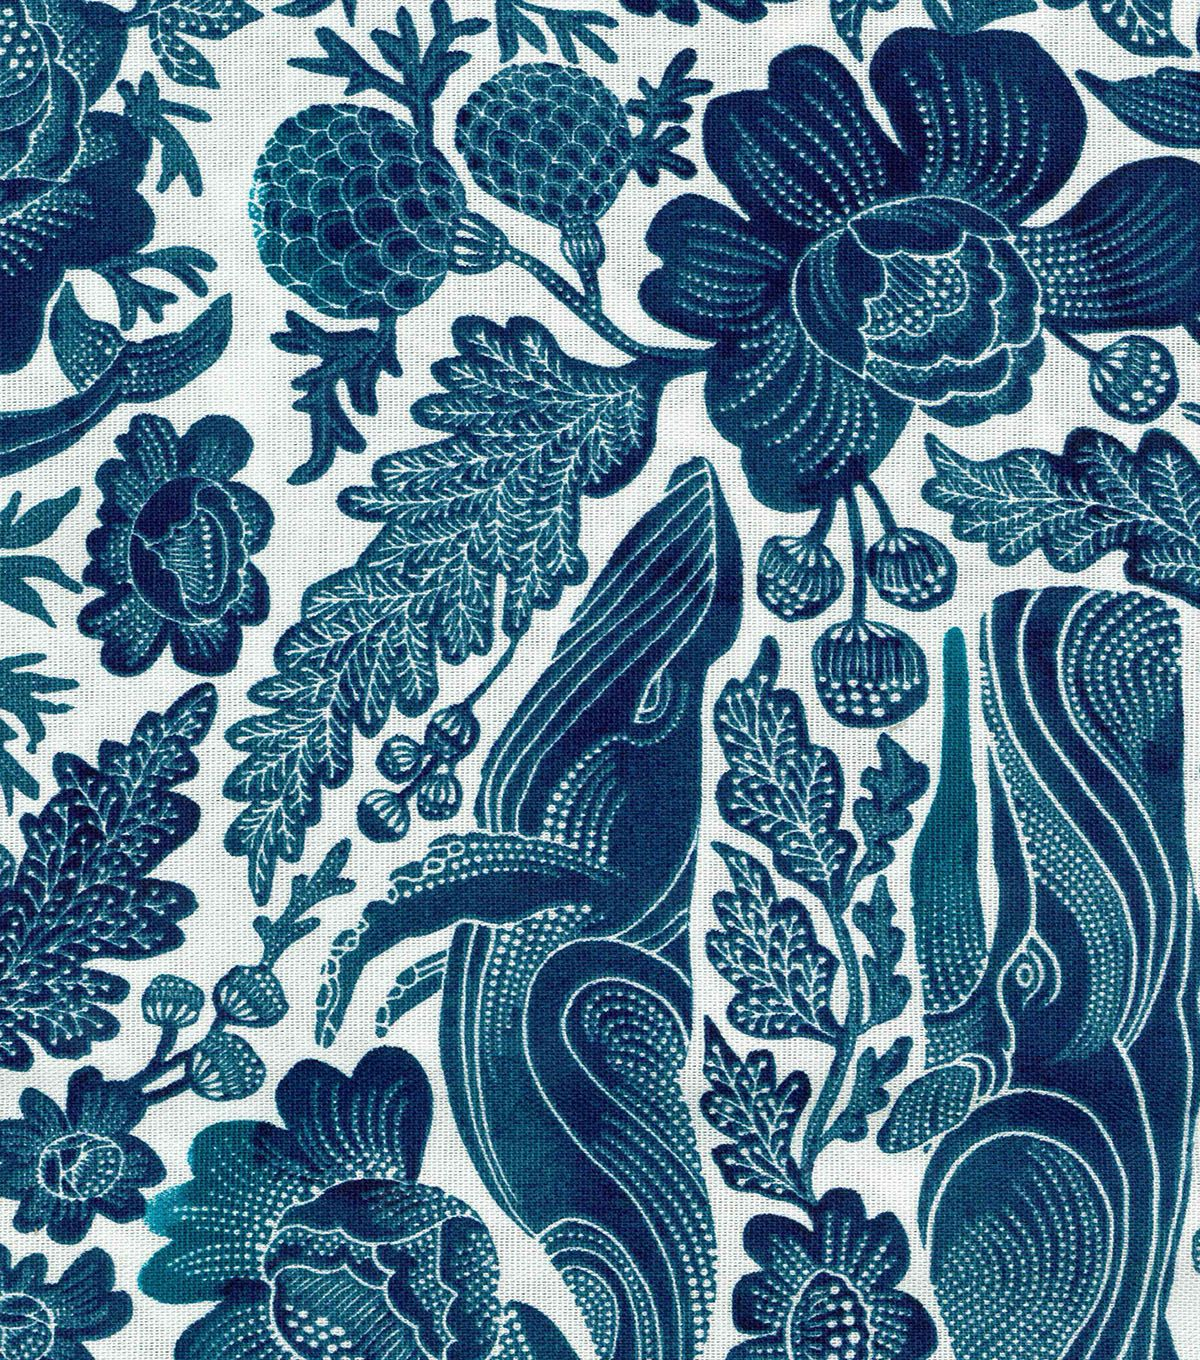 Whale floral home décor fabric